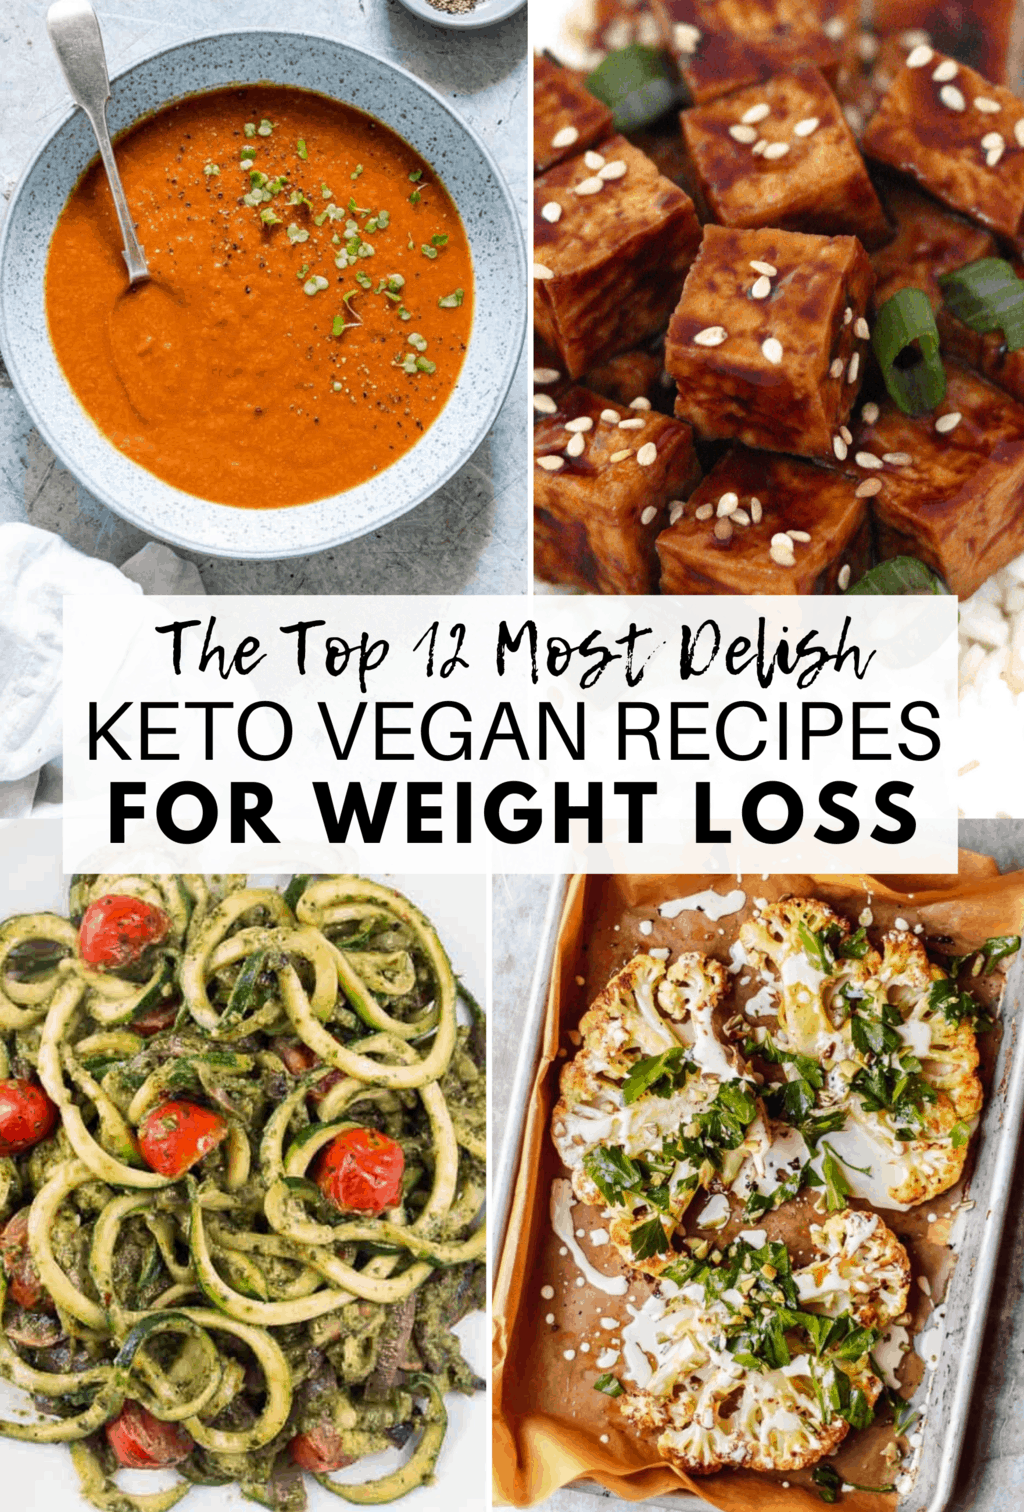 Here are the 12 BEST Keto Vegan Recipes for Weight Loss that are absolutely divine! They'll help you trim down and achieve your weight loss goals in a delicious and delightful way. All recipes are gluten-free, dairy-free and sugar-free, too!